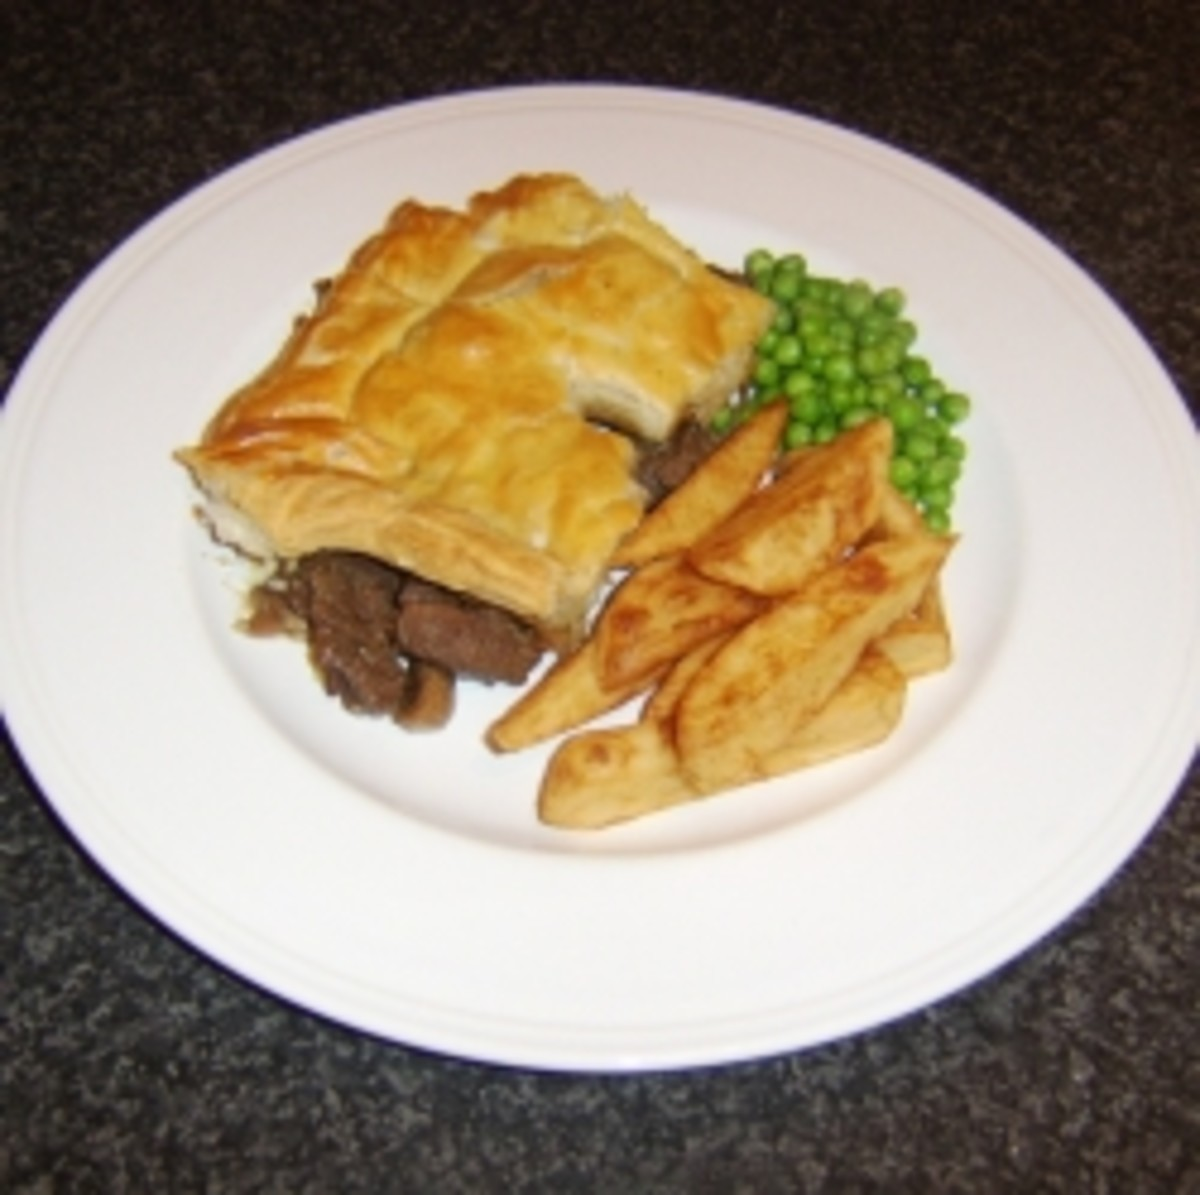 Homemade Steak and Kidney Pie Recipe